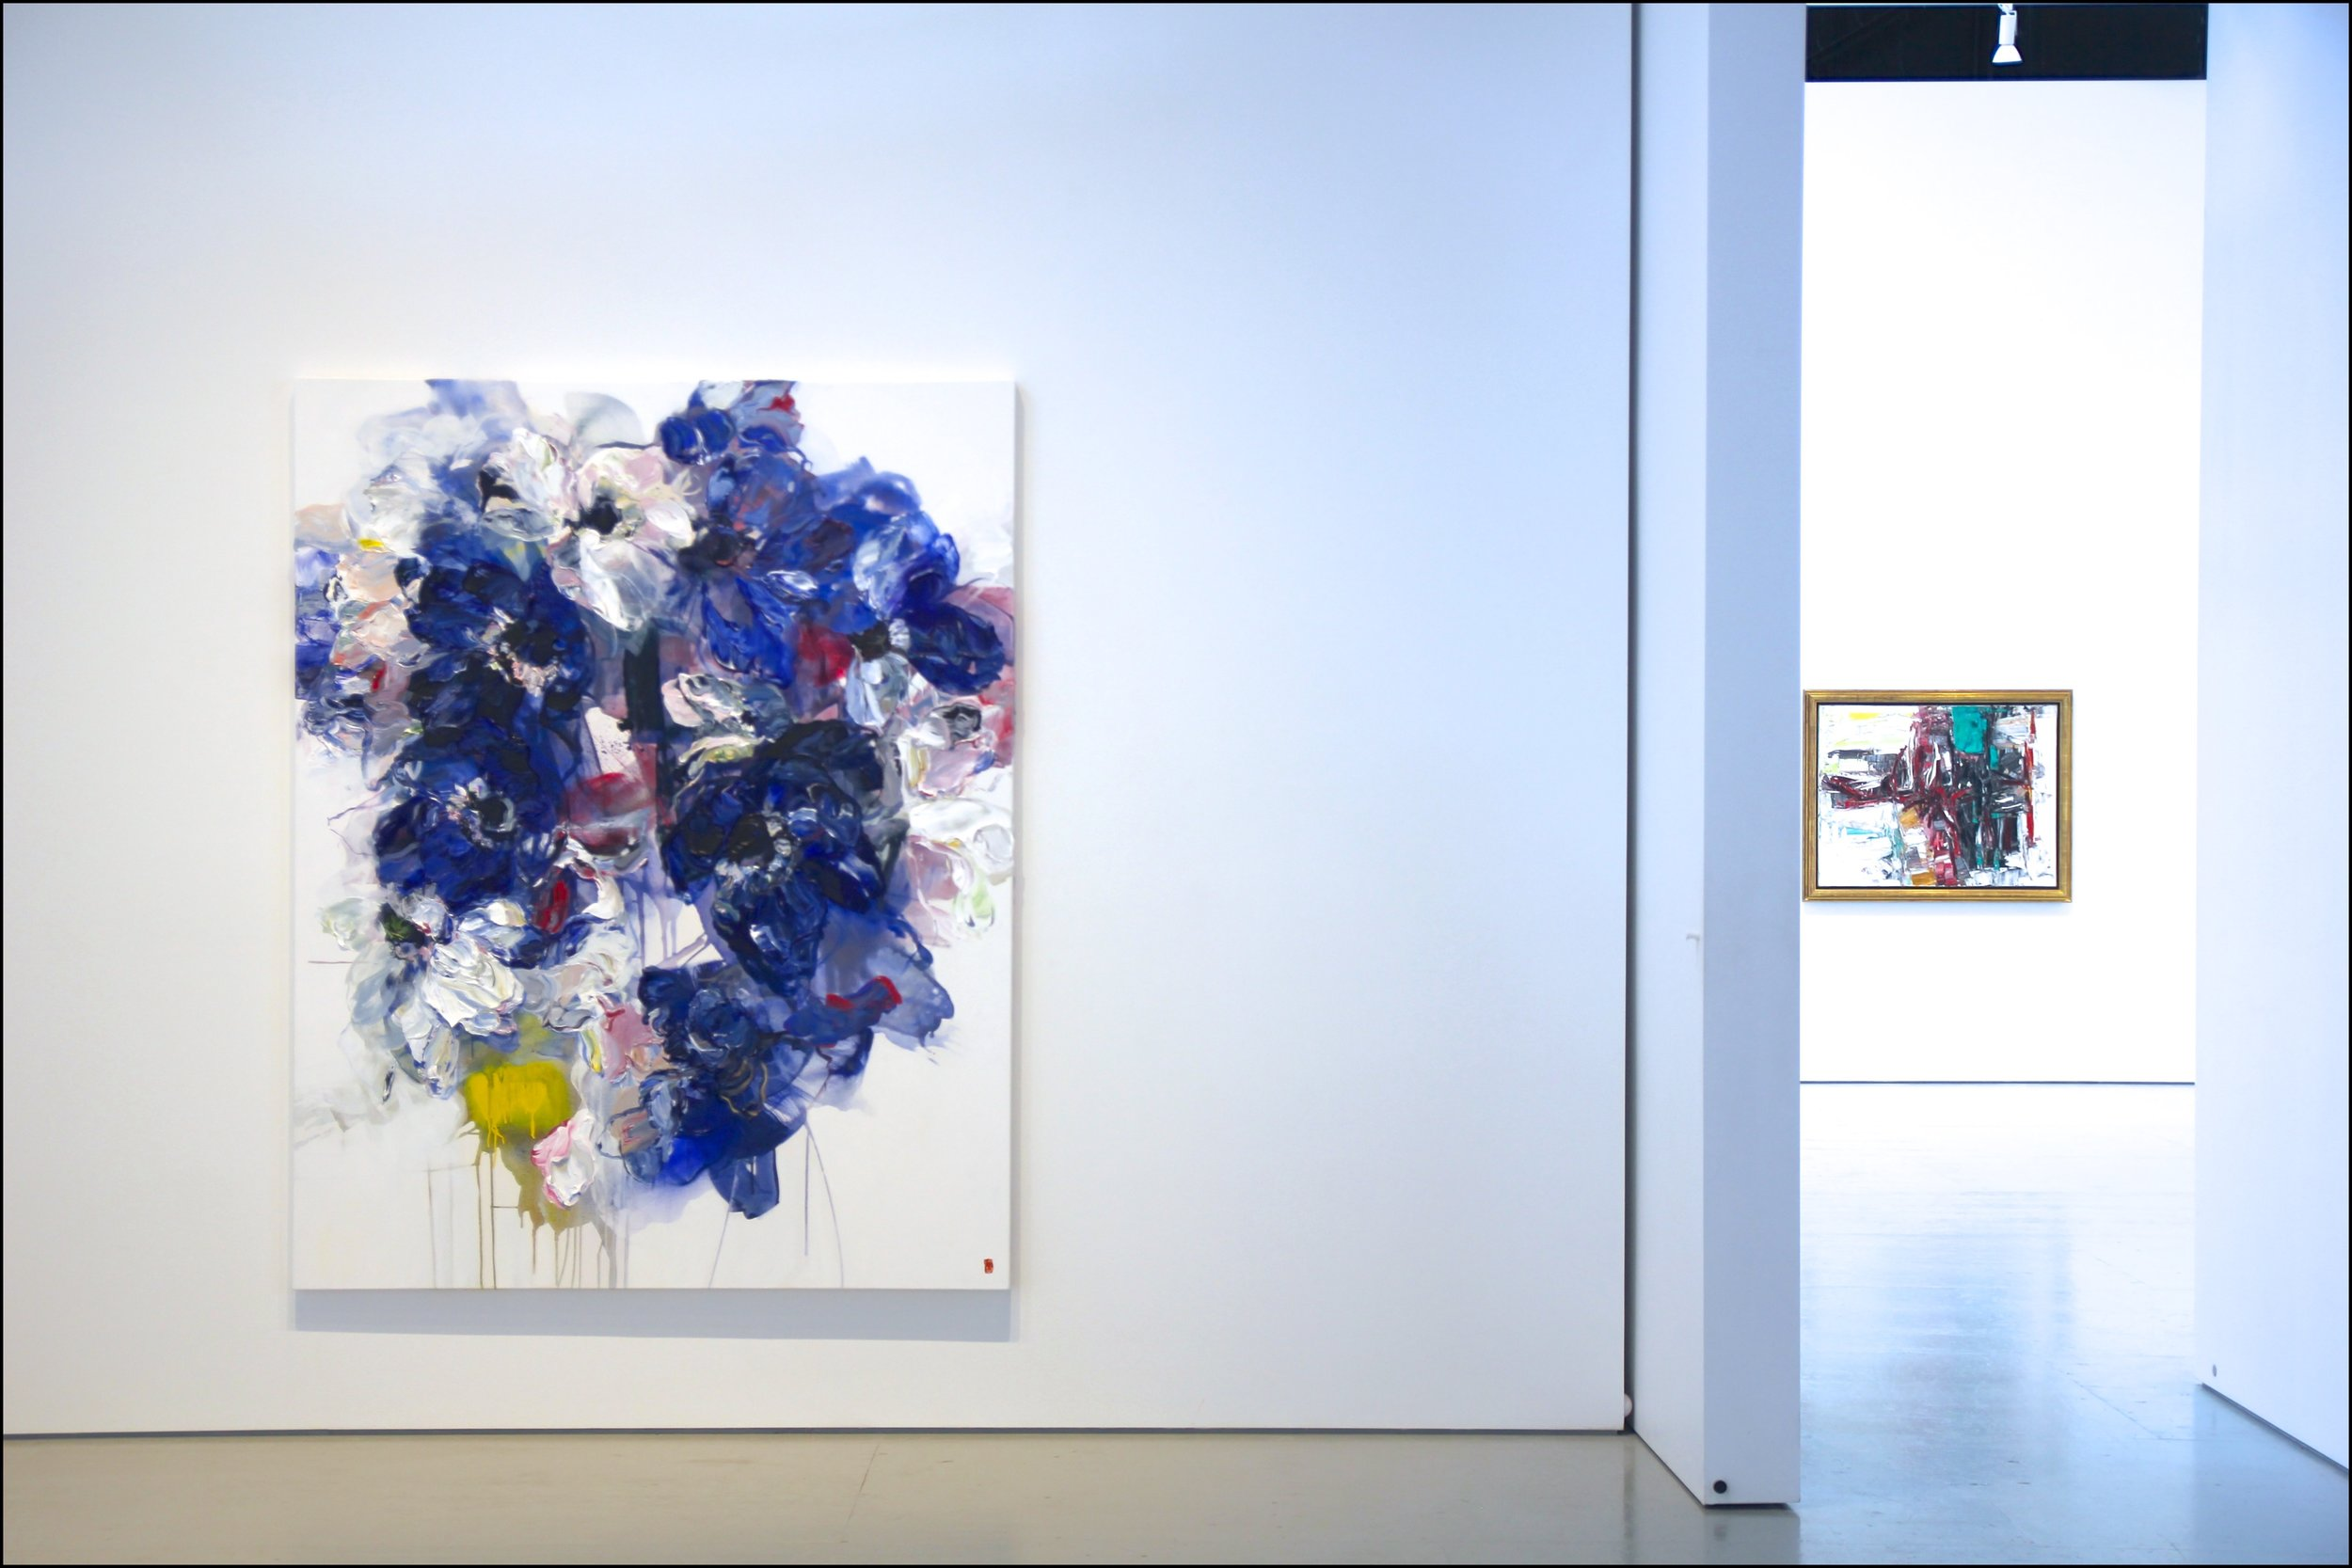 Atmospheric Pressure 84x66 2017   Pictured In Exhibit With Jean-Paul Riopelle